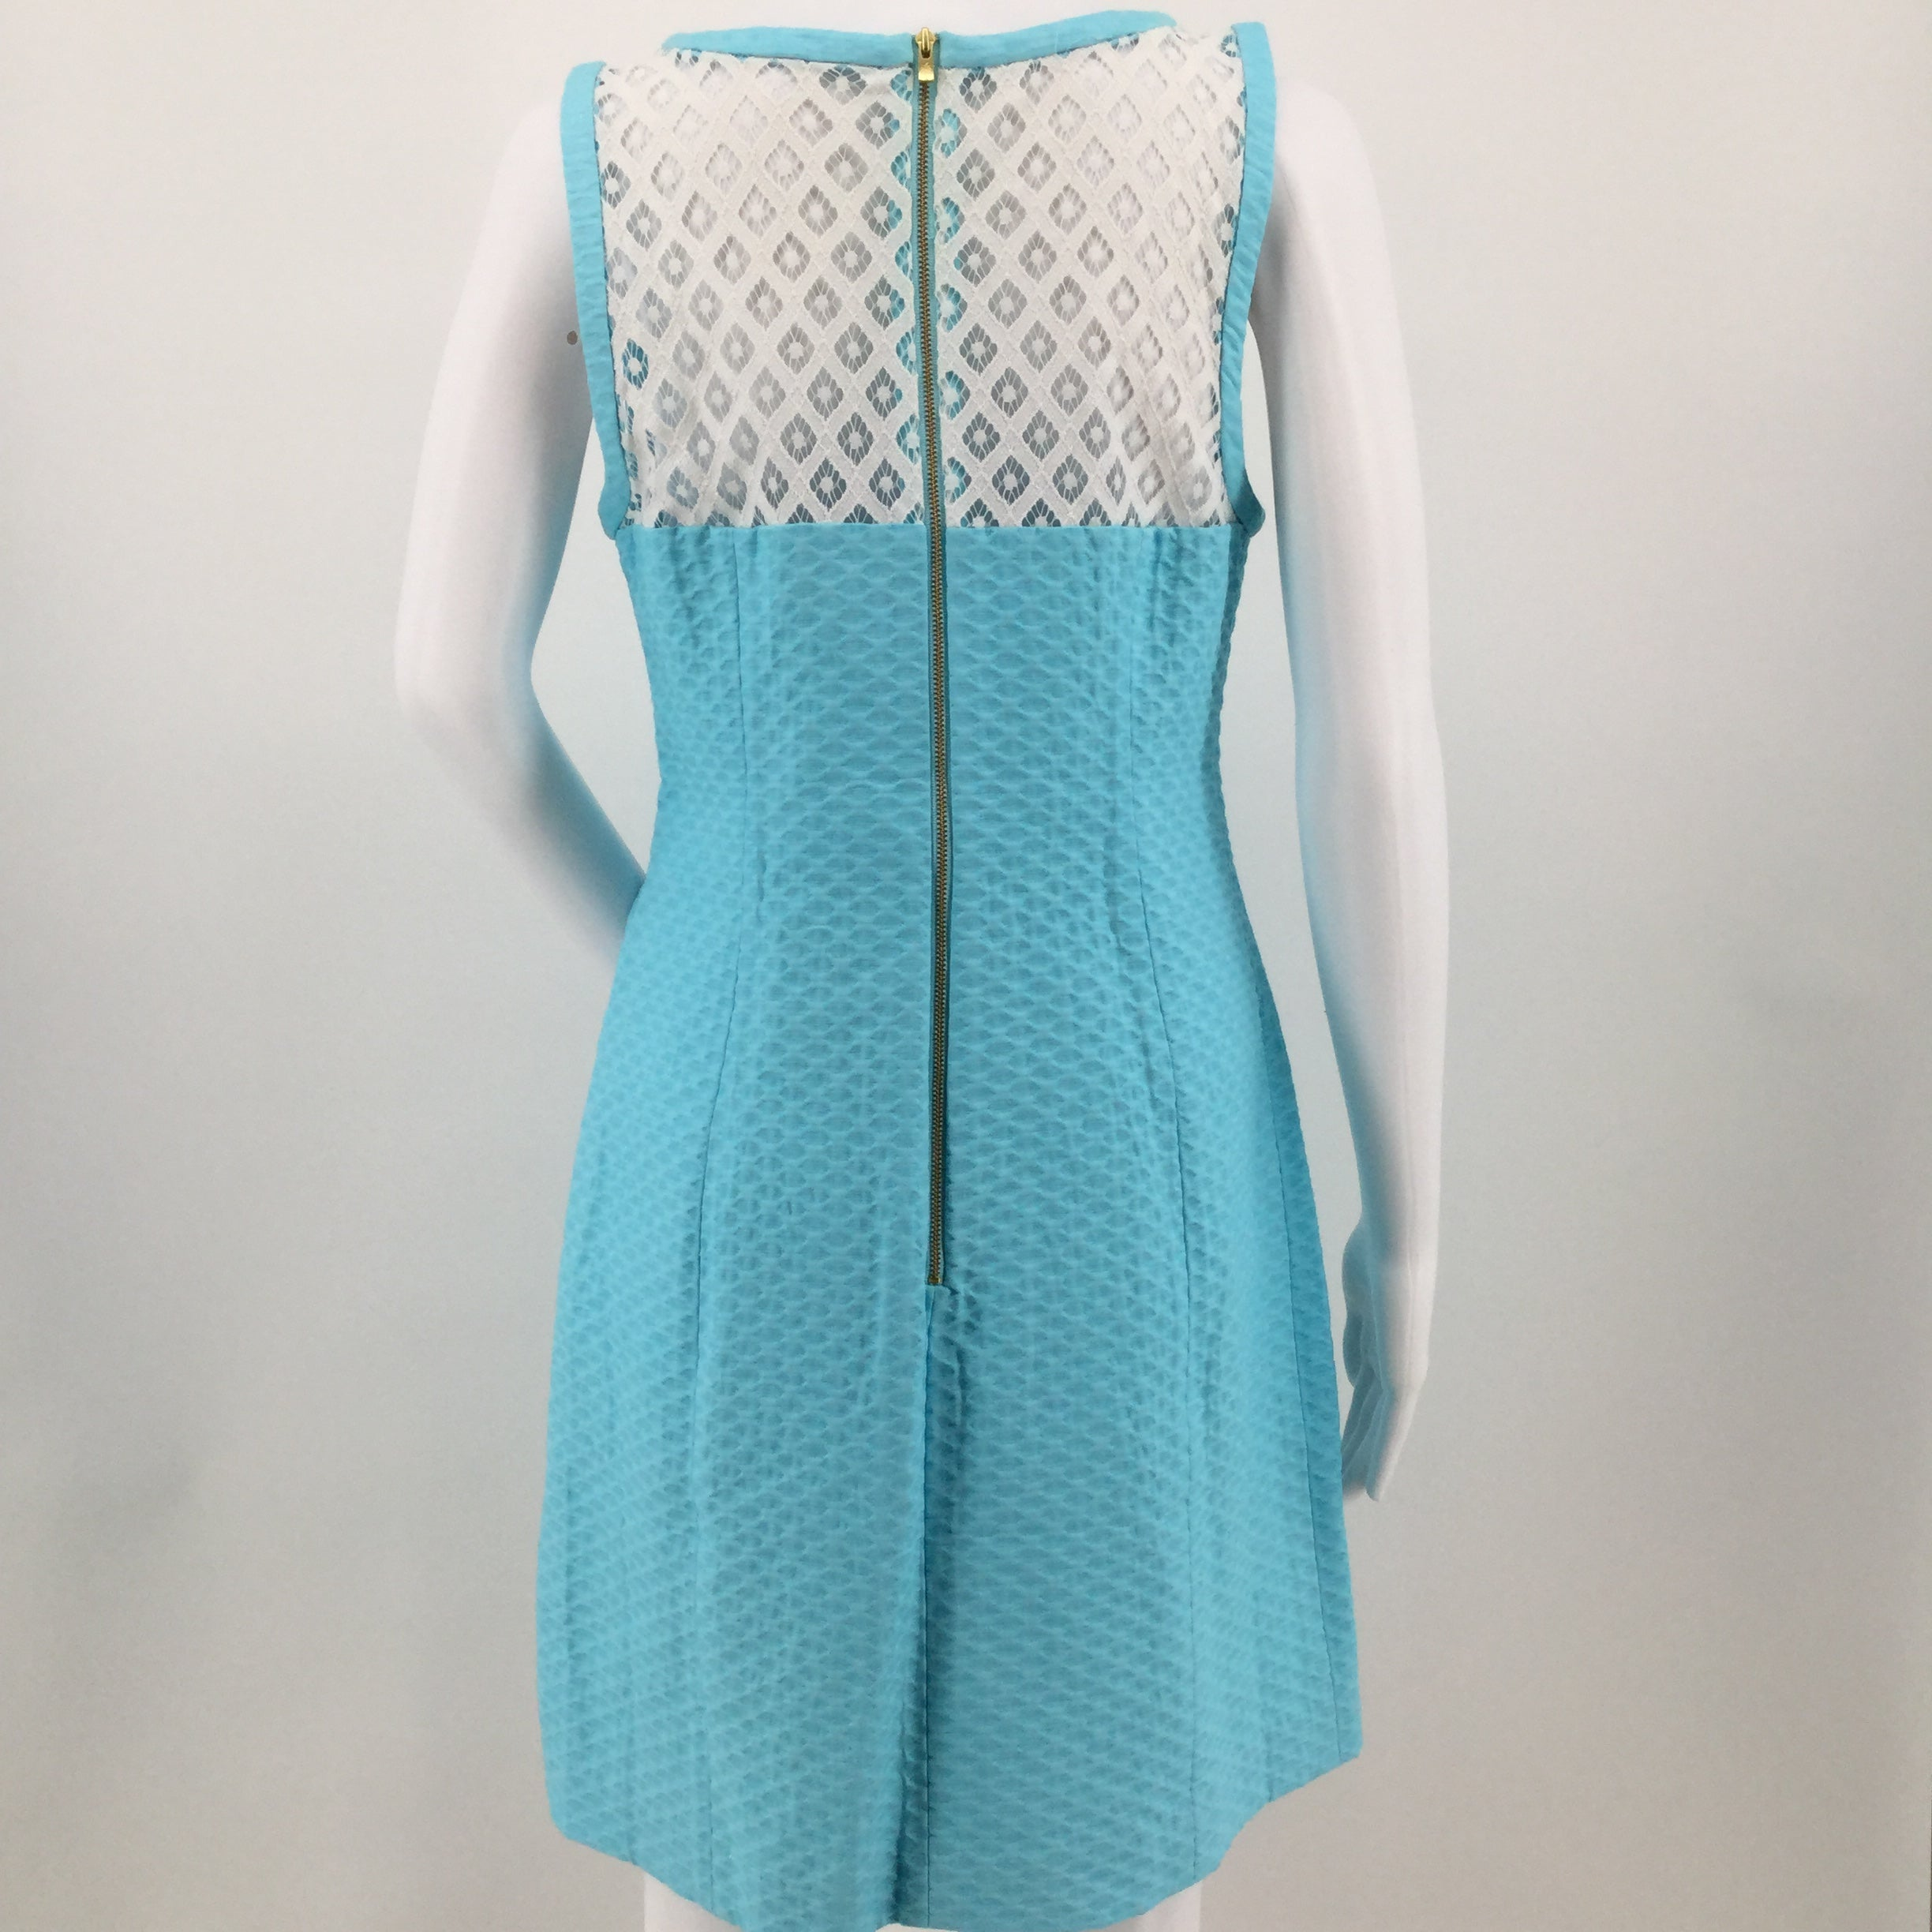 APPAREL,DRESSWEAR - VANDALIA SHIFT STYLE LP SLEEVELESS DRESS IN SERENE BLUE. SIZE 8. COTTON, NYLON. DRY CLEAN.